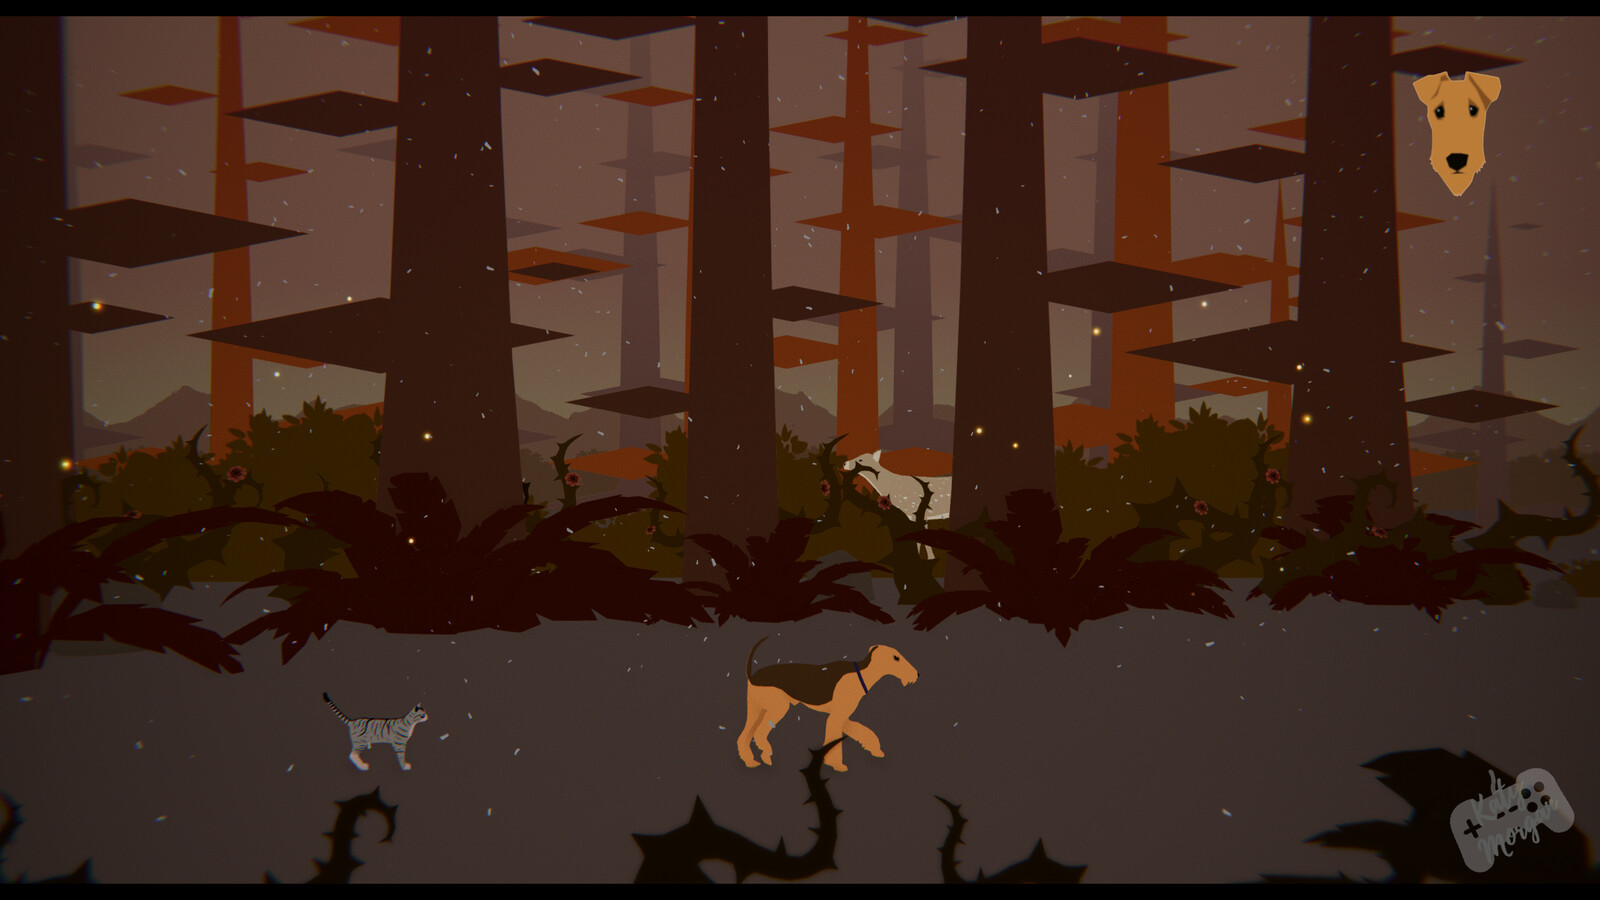 They make their way forward, seeing other animals fleeing the other direction. All assets here are 3D made by myself in Maya.